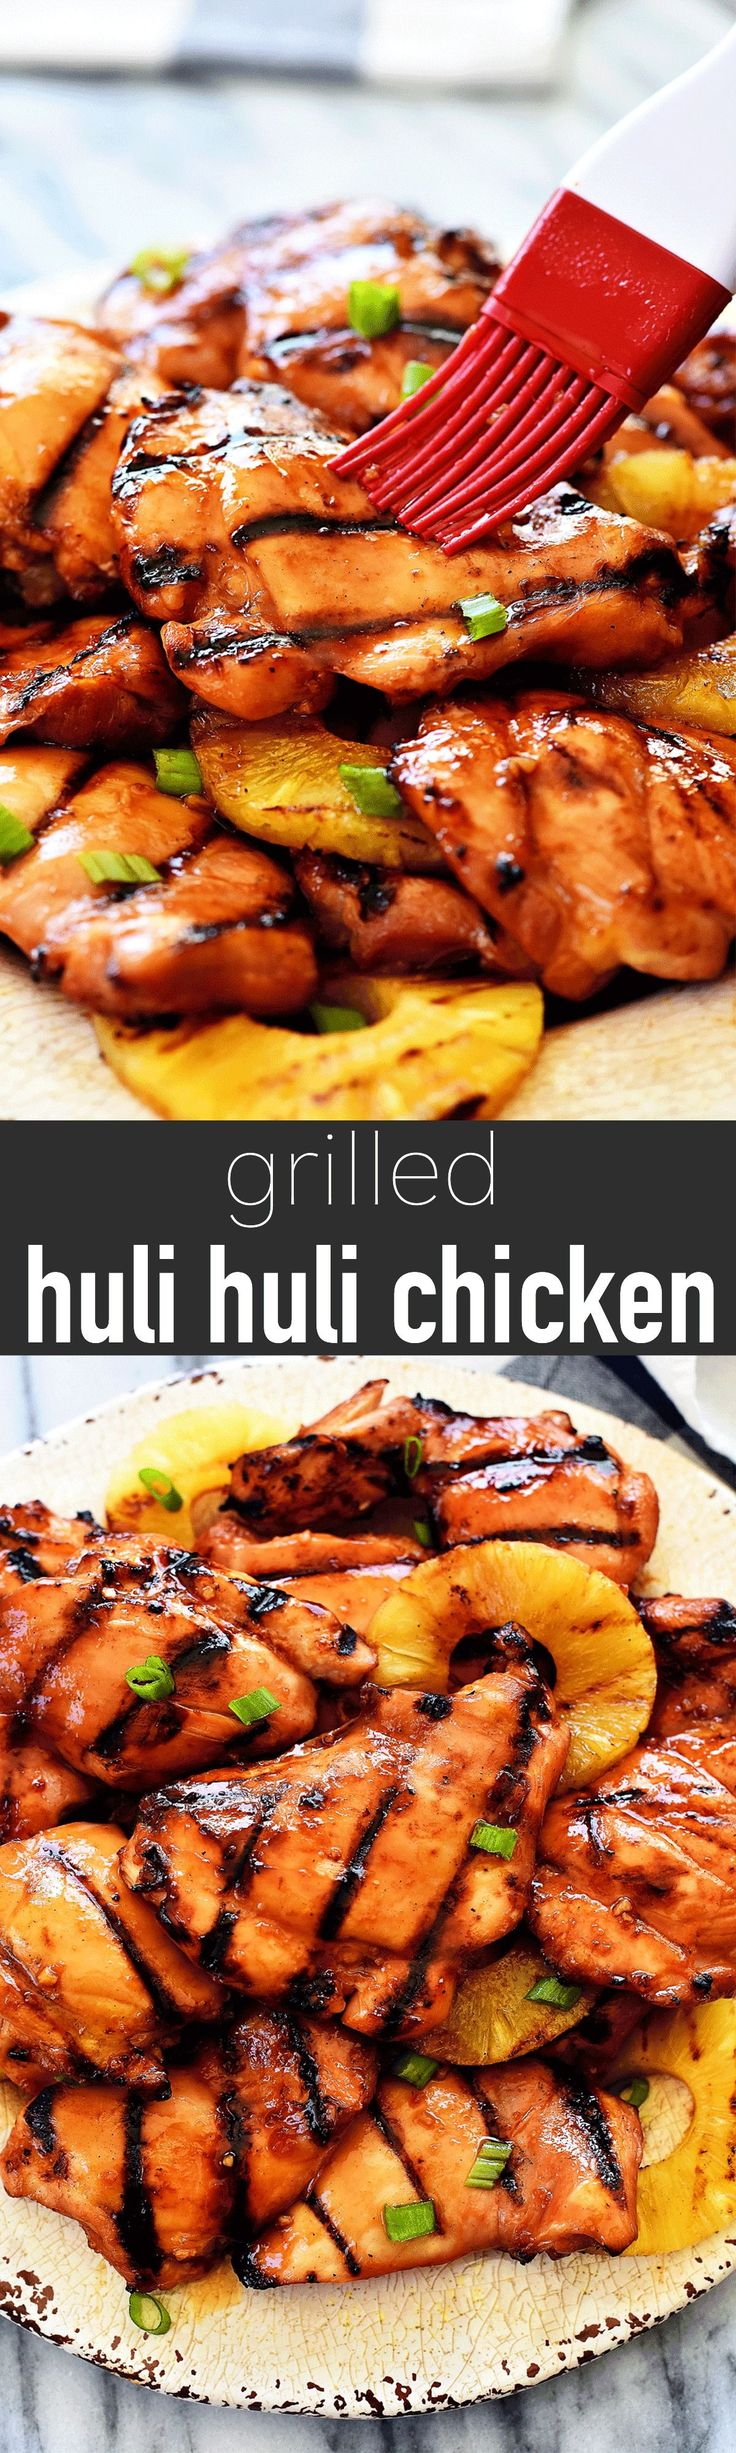 Grilled Huli Huli Chicken - Life In The Lofthouse